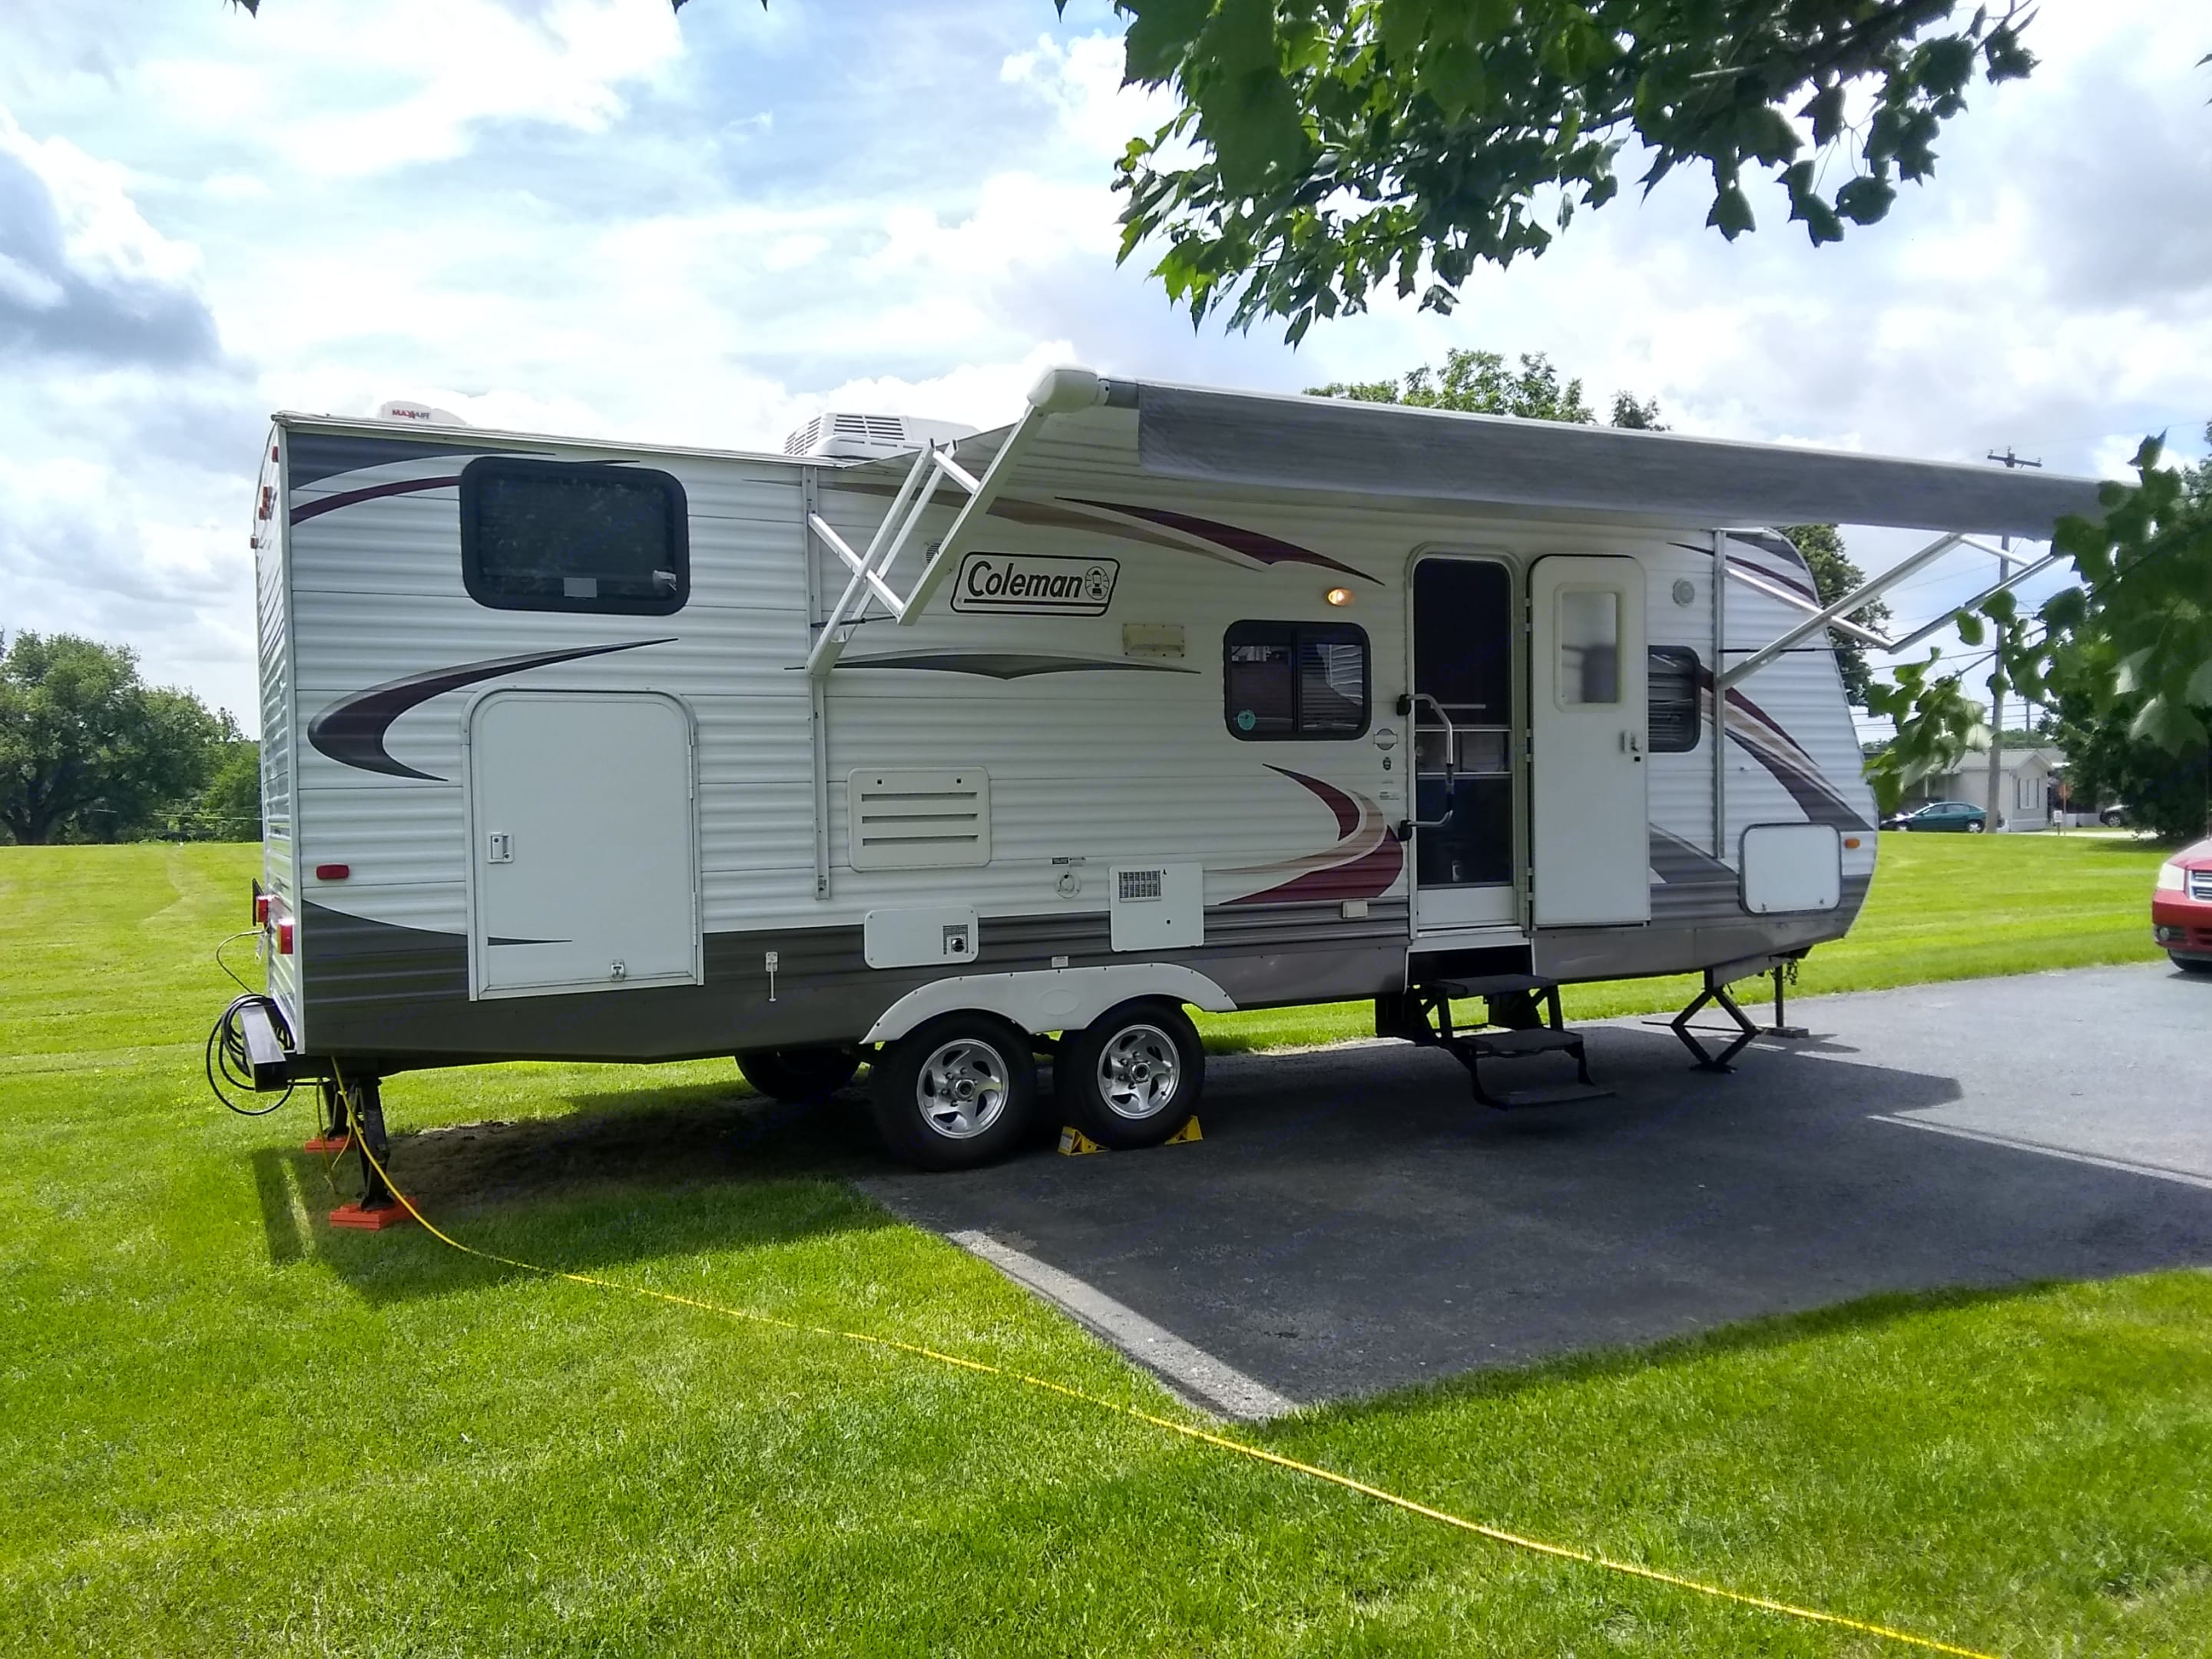 Exterior Entry side with a porch light, Exterior power outlet, 3 step entry with gold away grab assist handle, and a large power retractable awning to provide shade from the sun and protection from the rain.. Dutchmen Coleman 2010